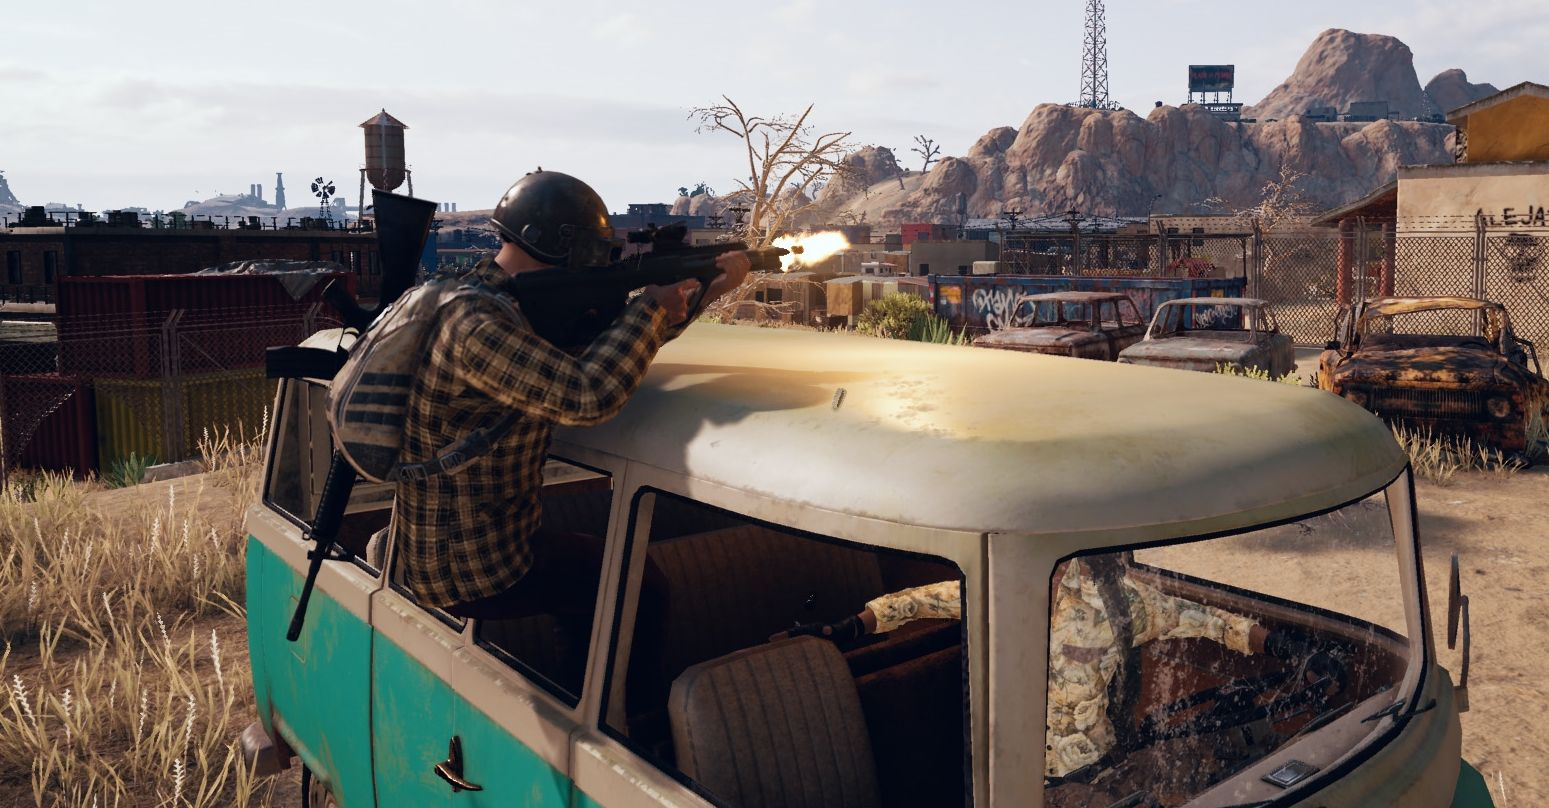 PUBG Corp to Balance Weapons by Nerfing Assault Rifles + Level 3 Helmet Changes